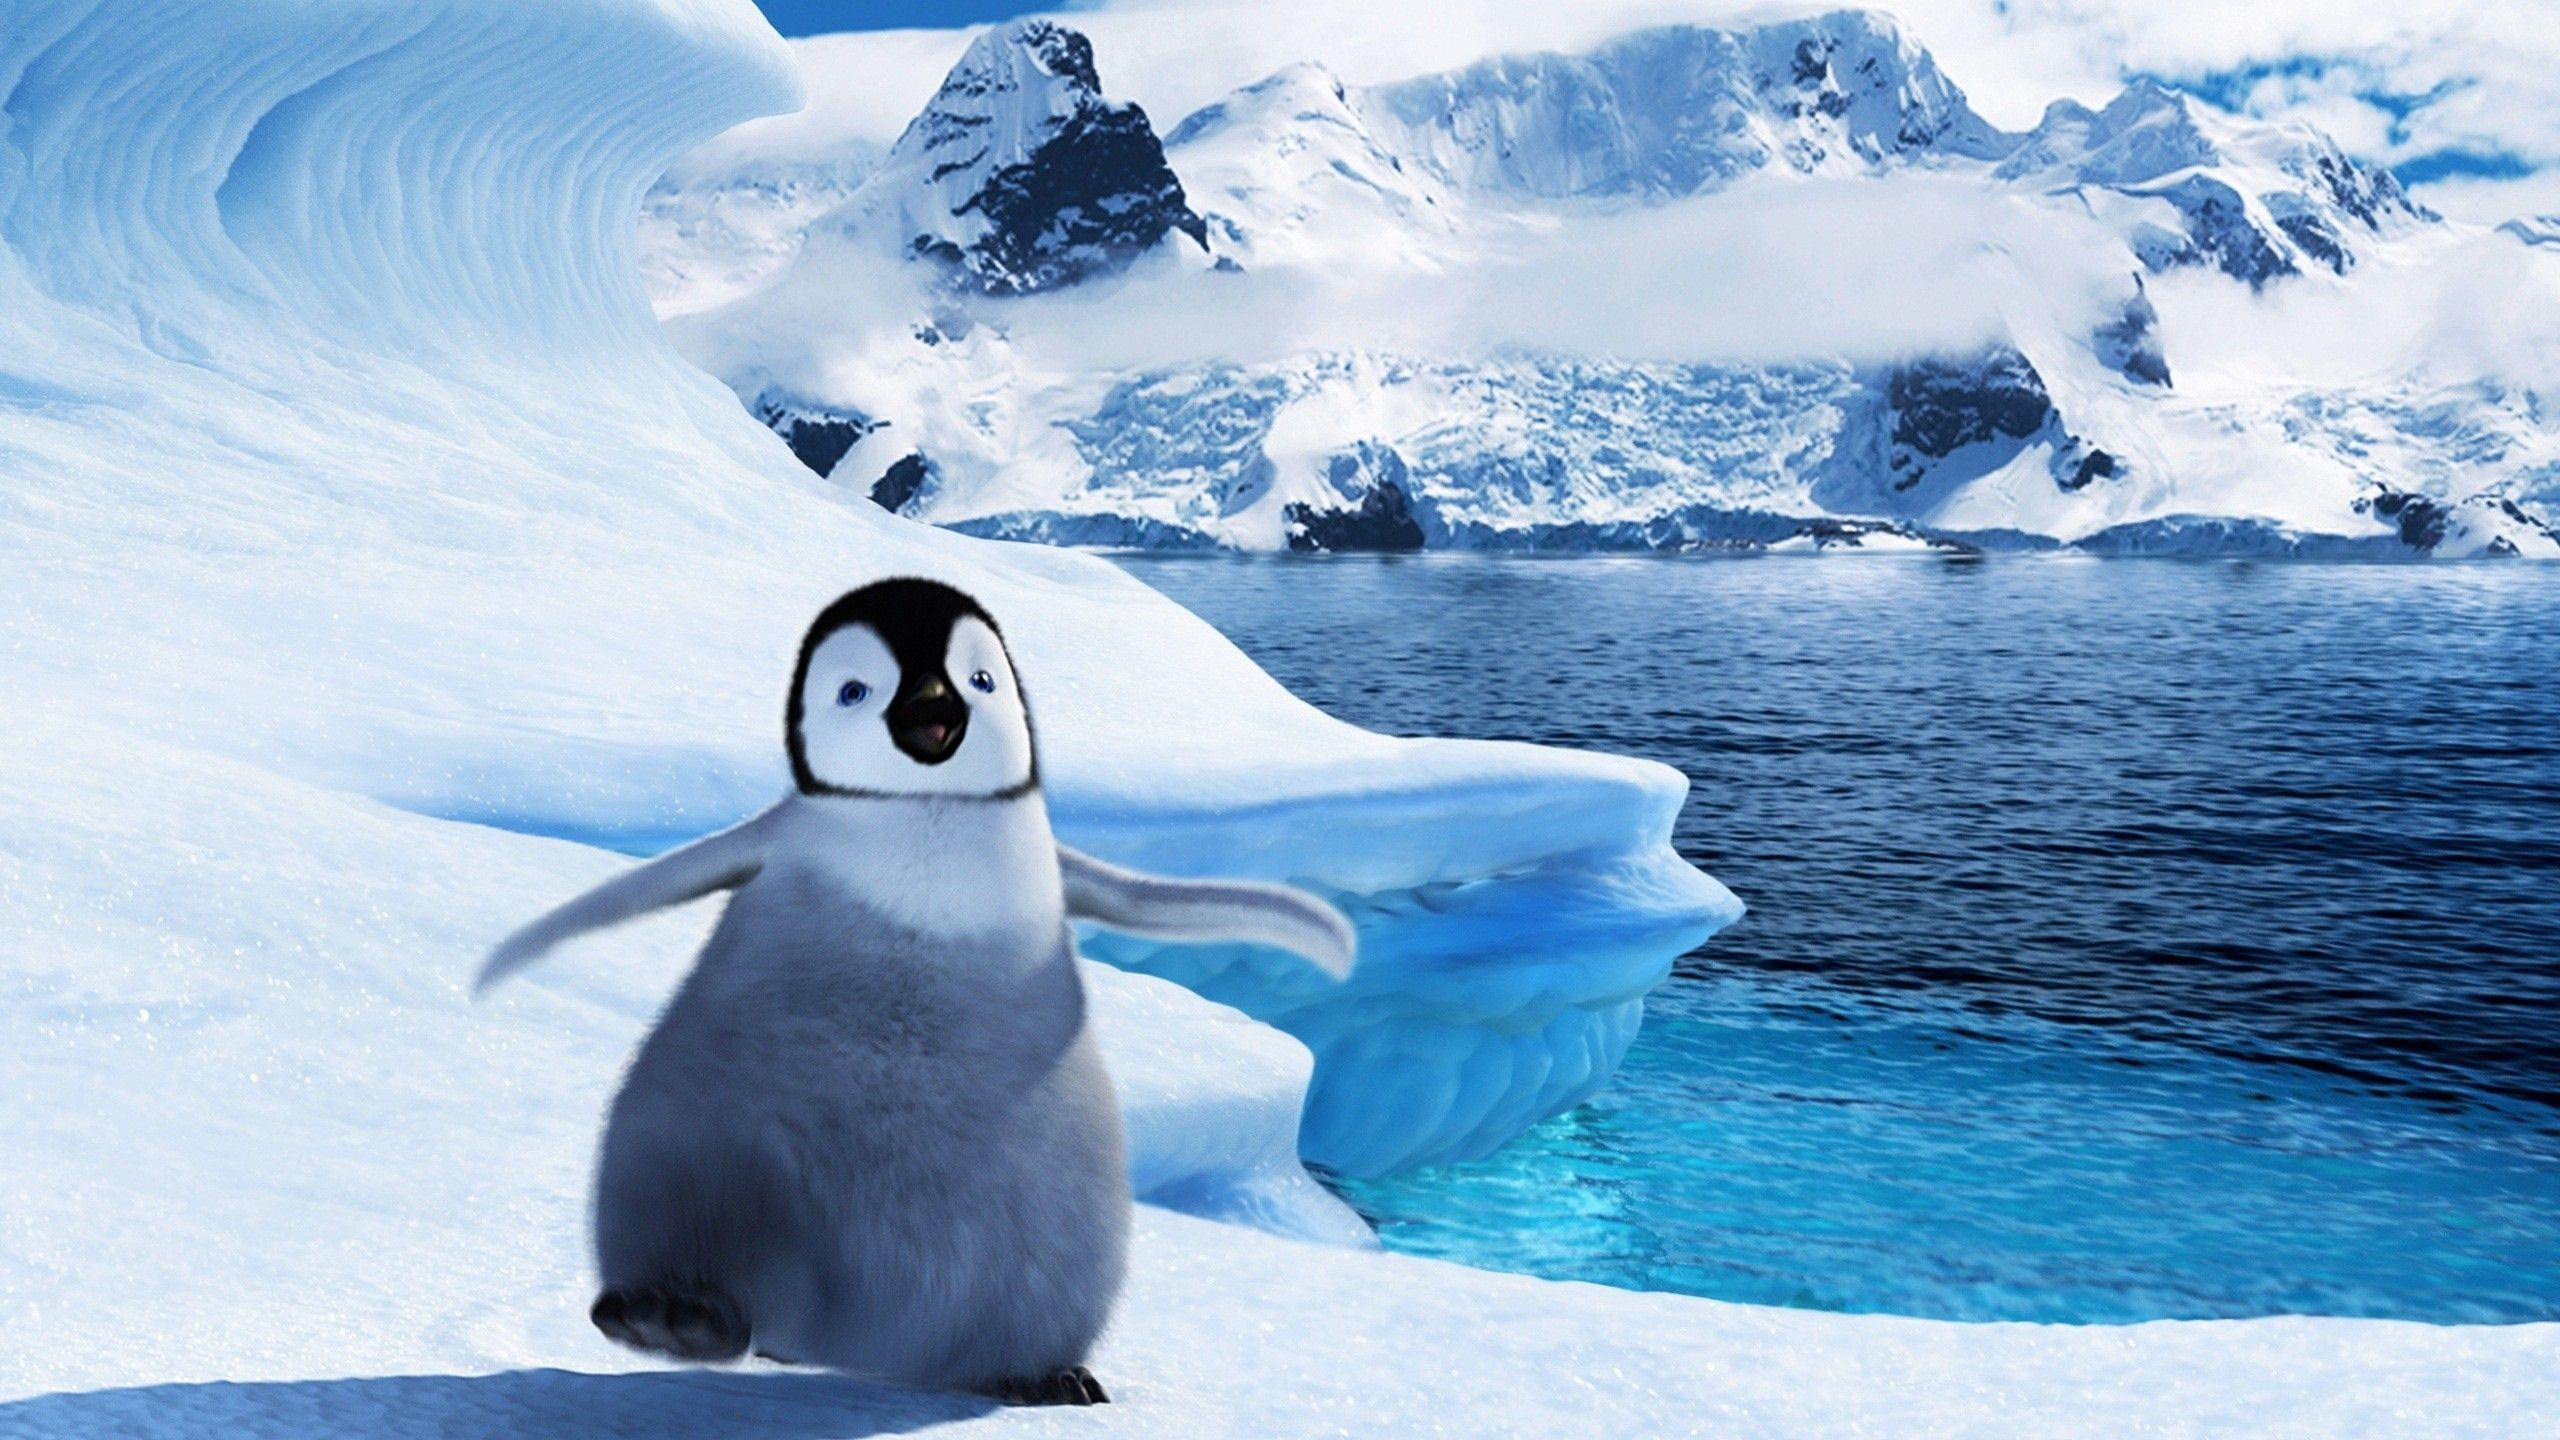 HD Live Penguin Pictures Wallpapers PUE WP | HD Wallpapers | Pinterest |  Wallpaper